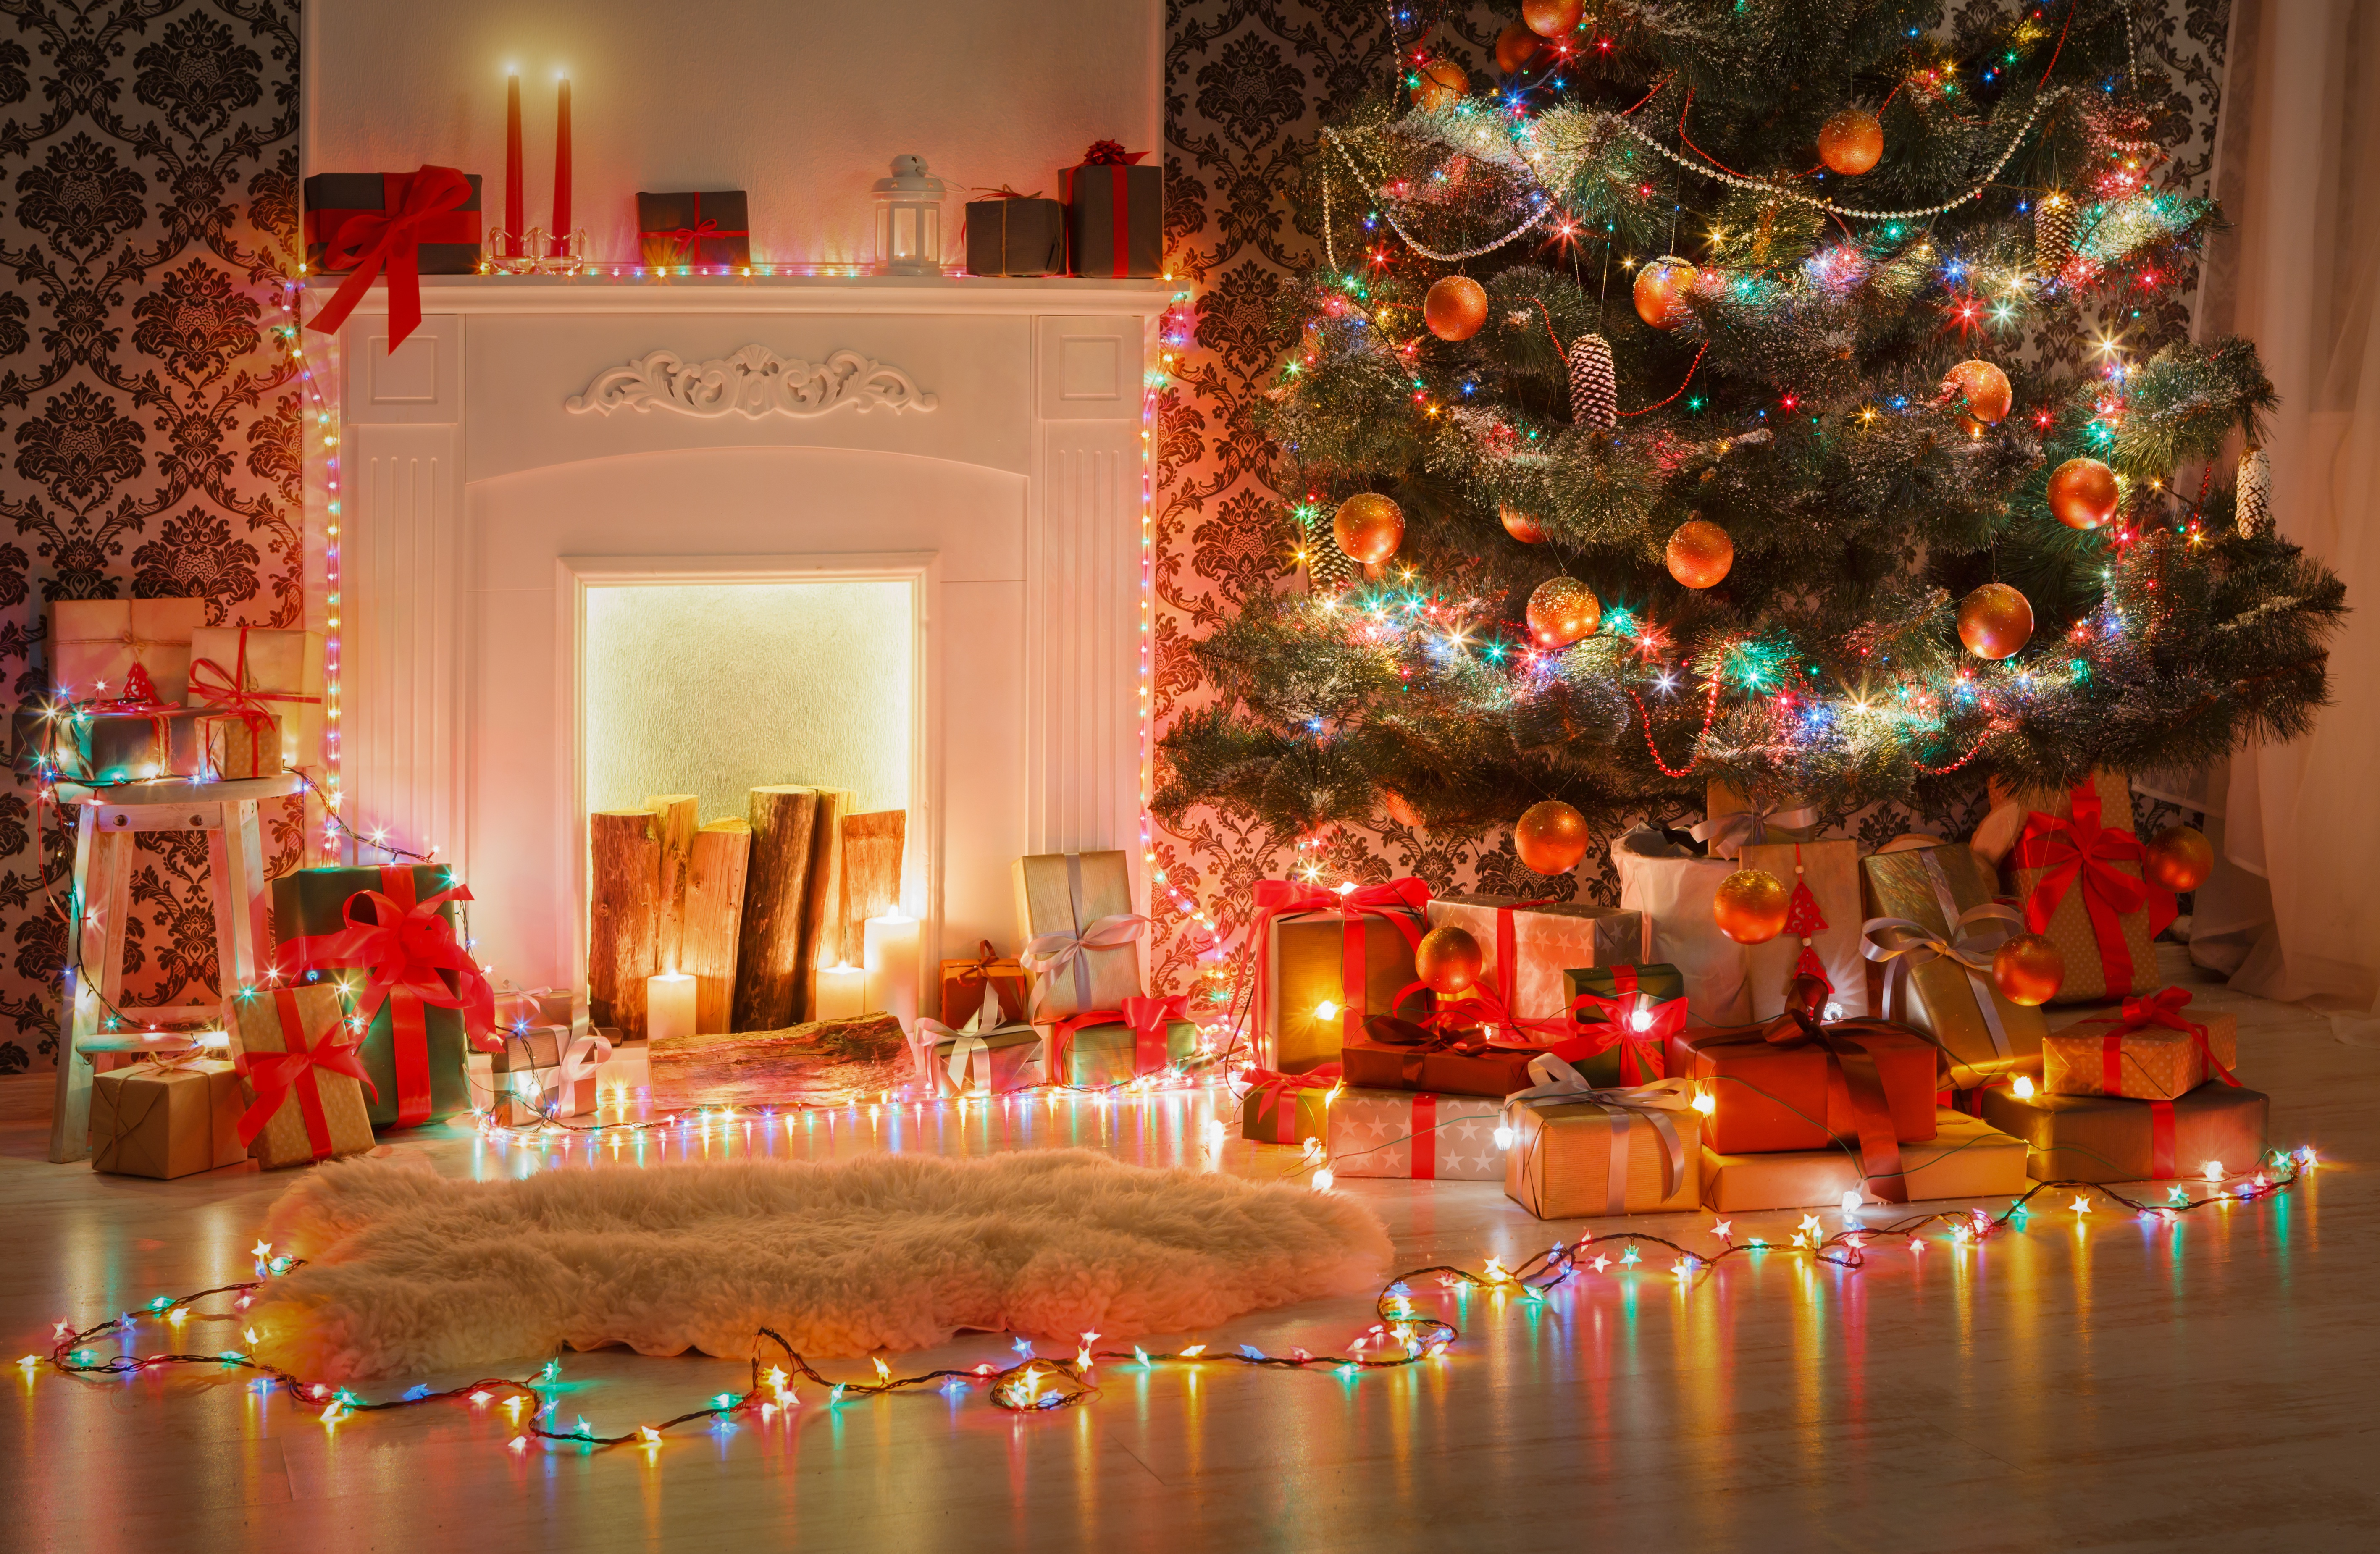 Download wallpaper xmas new year gifts interior merry for Interior decoration for new year